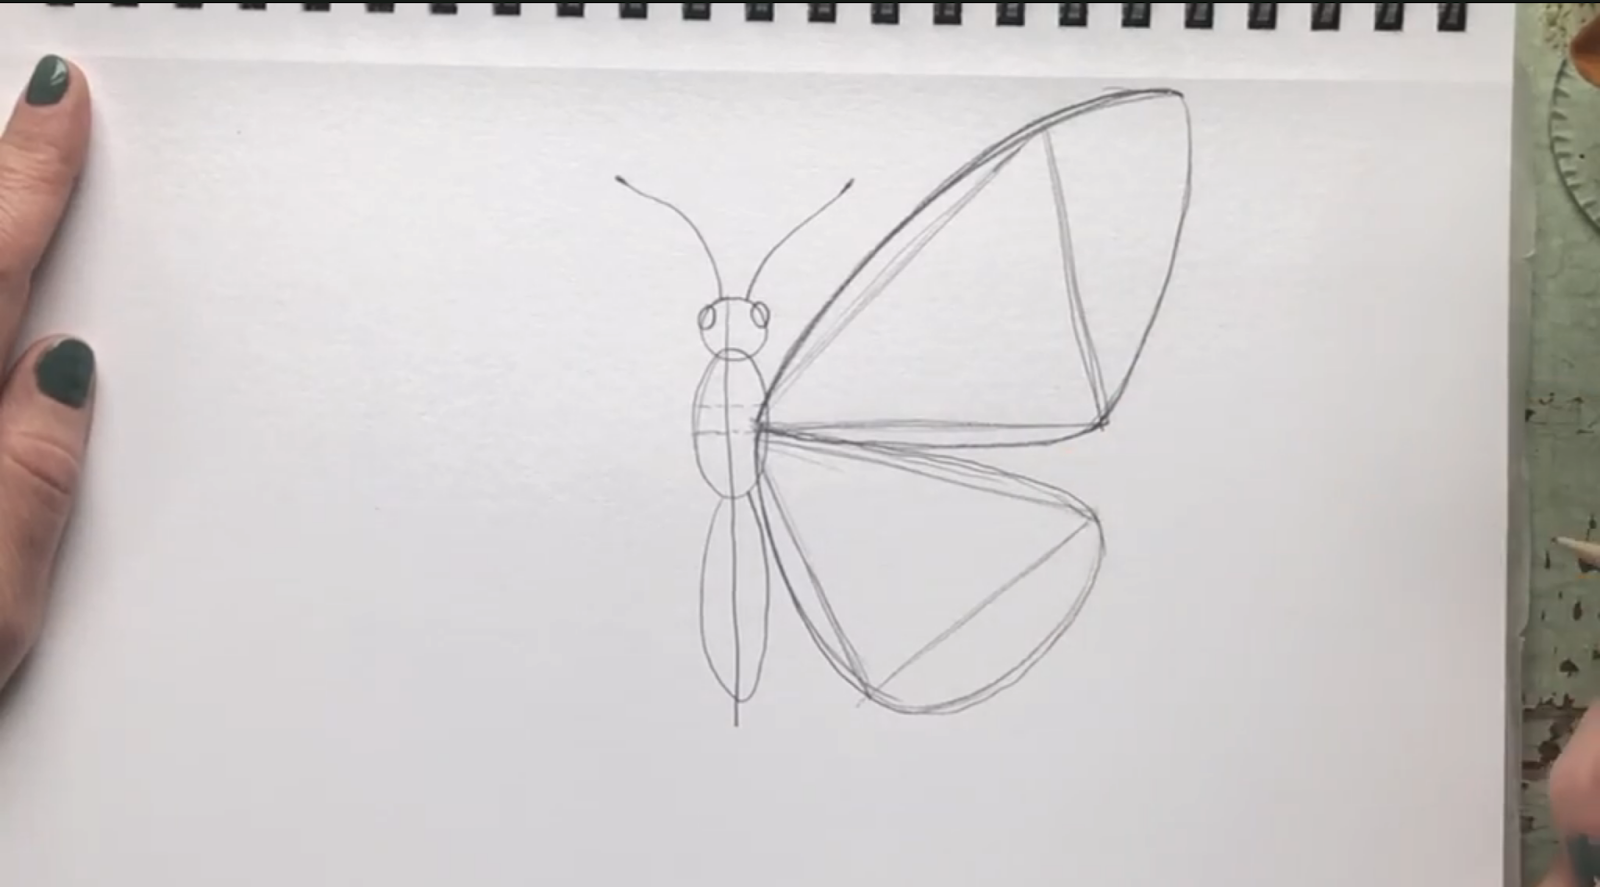 Draw the outline of the top wing by going around the triangle with curved lines.